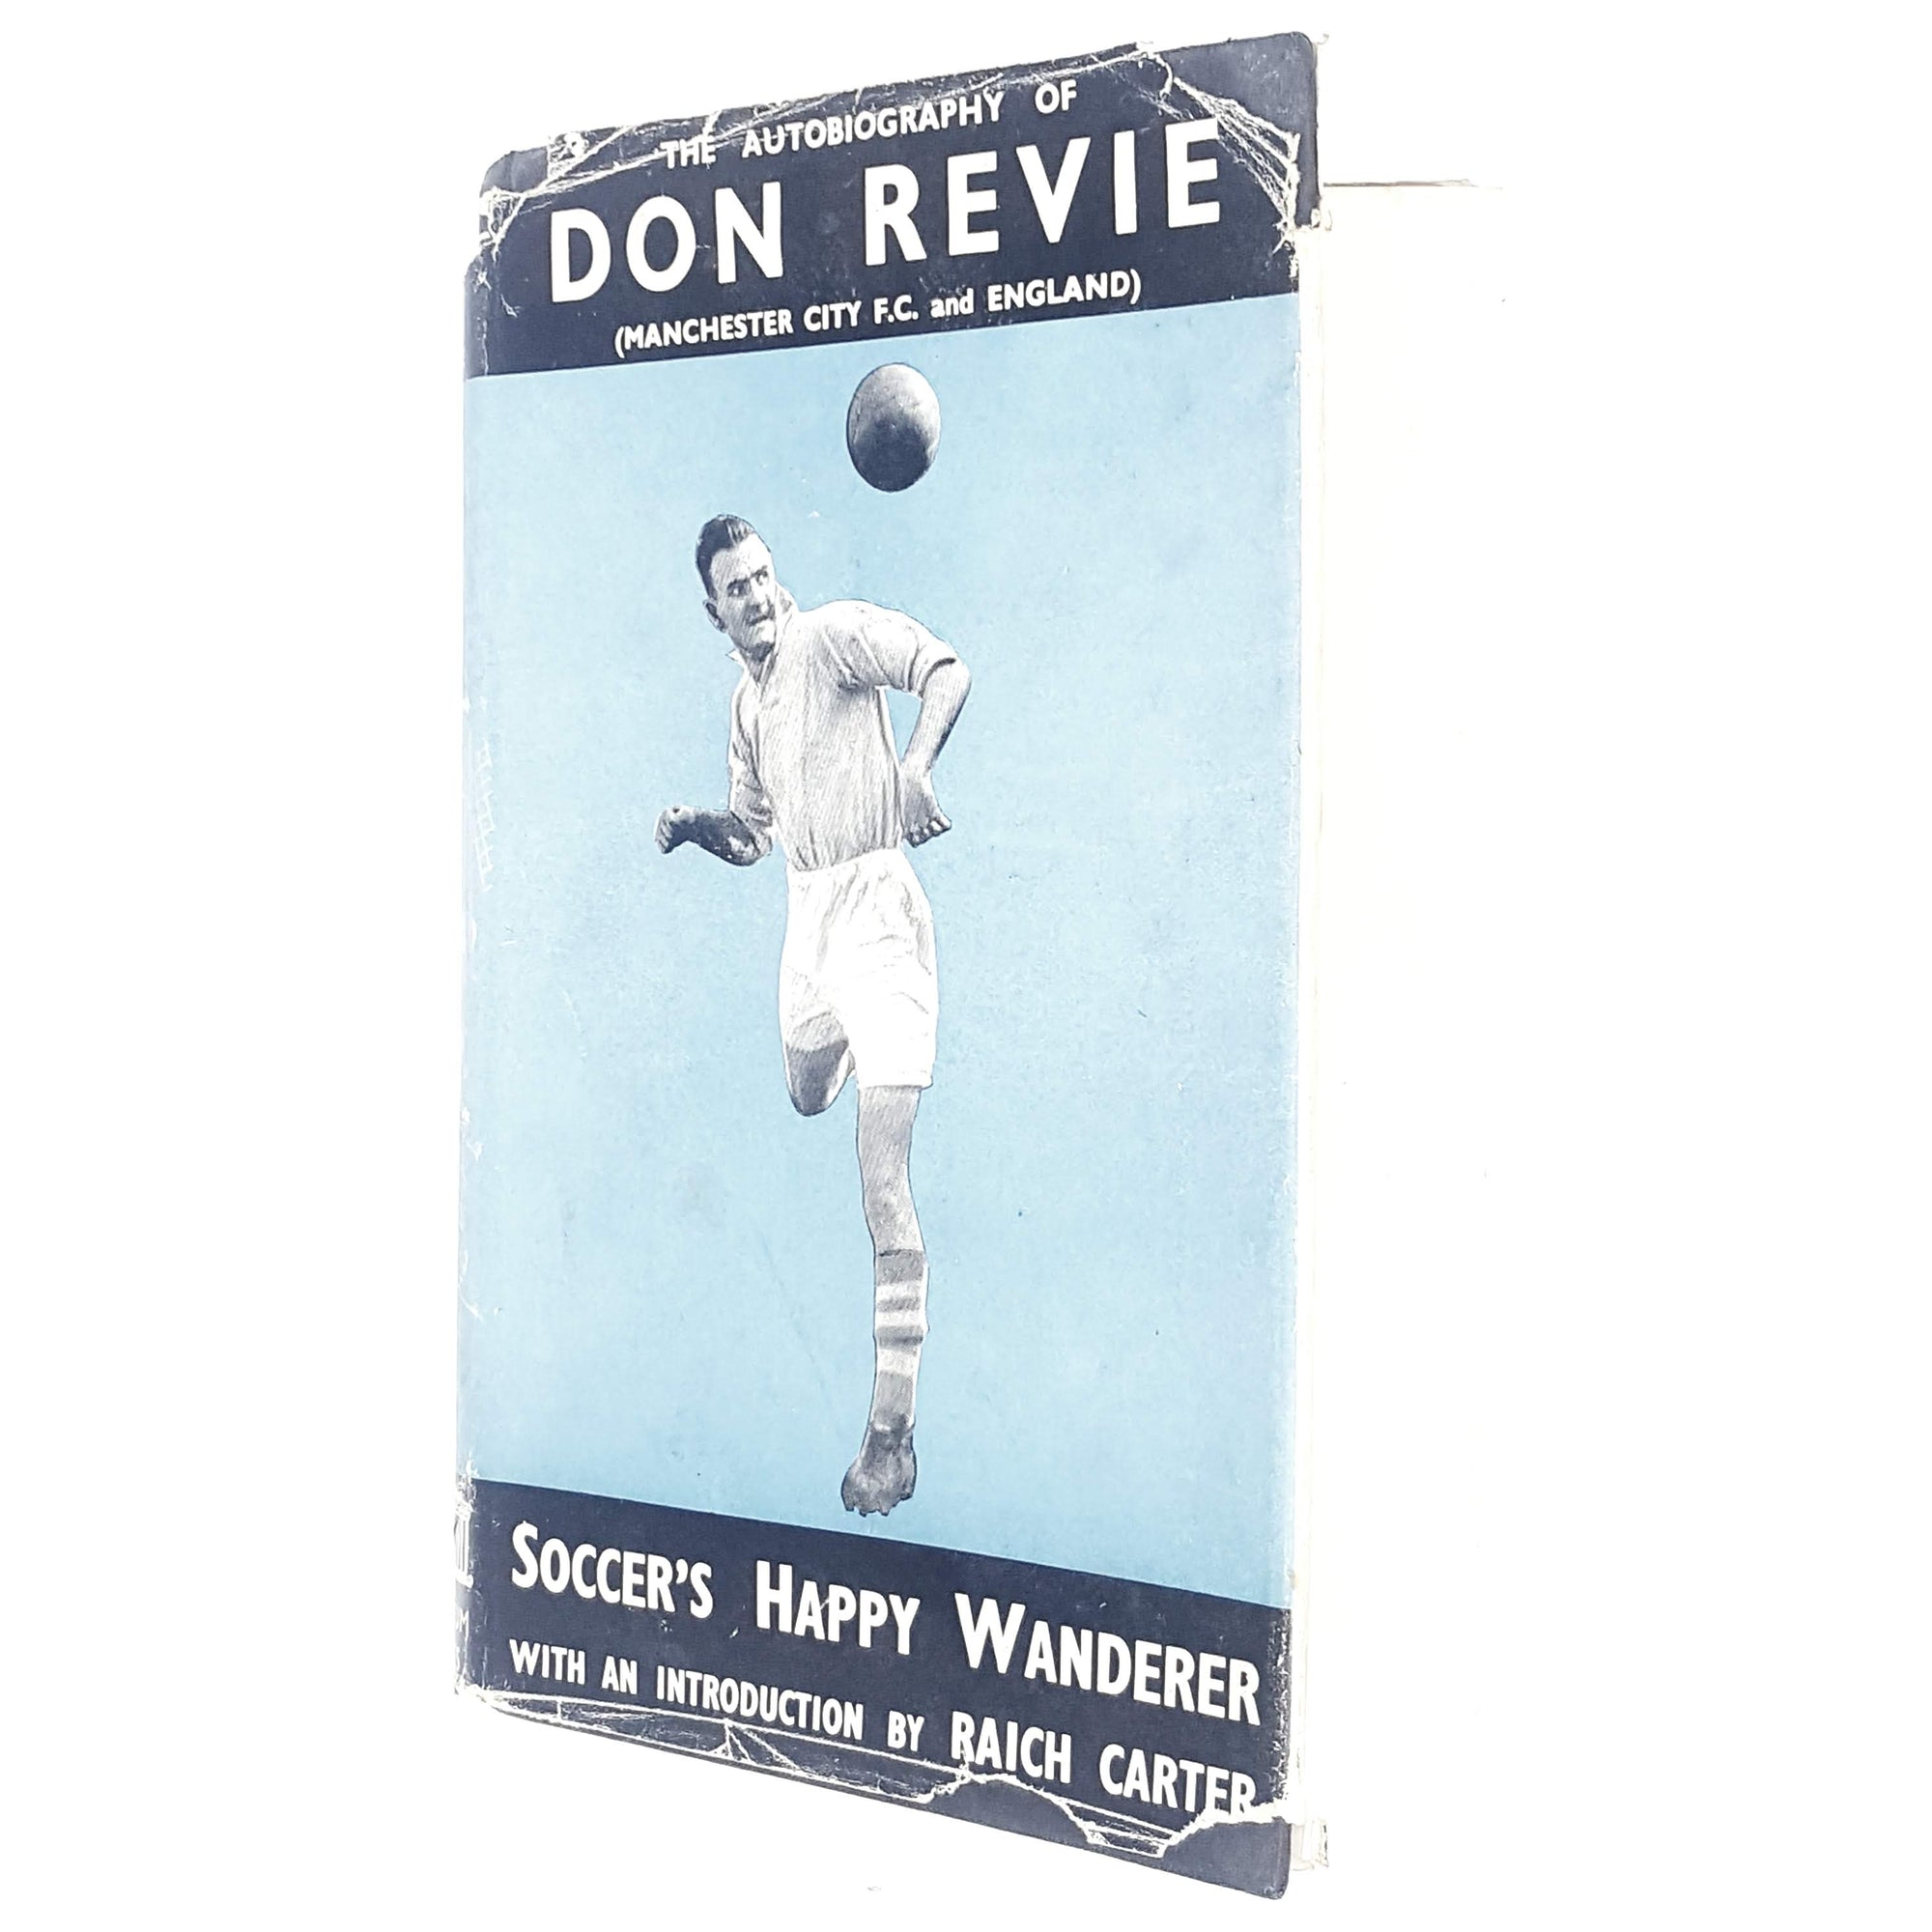 First Edition Autobiography of Don Revie 1955